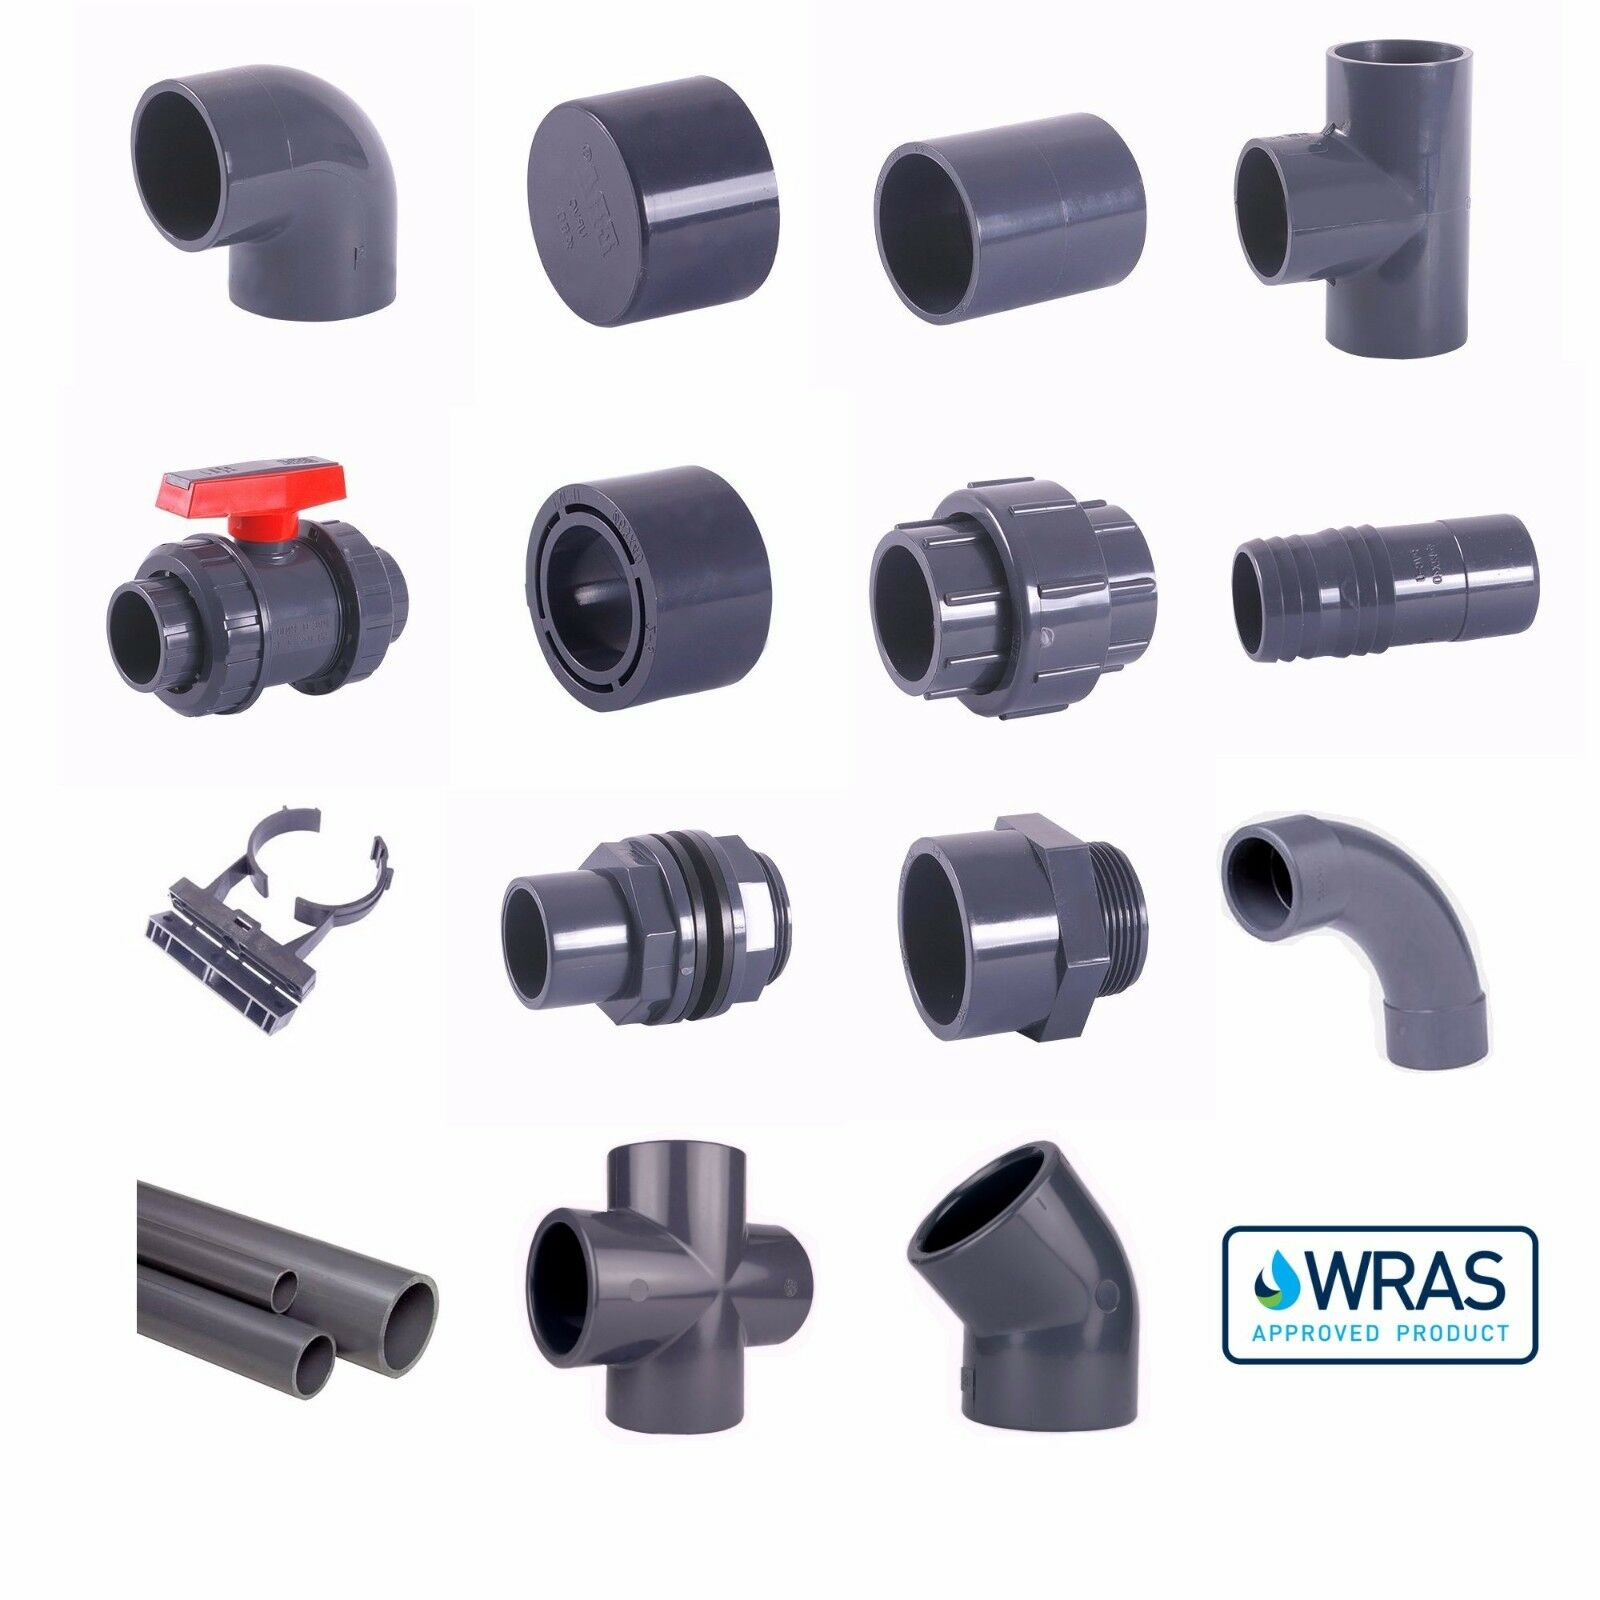 PVC Metric Solvent Weld Pressure Pipe Fittings 12mm to 75mm OD Marine Aquariums 1 di 12 PVC Metric Solvent Weld Pressure Pipe Fittings ...  sc 1 st  PicClick IT & PVC METRIC SOLVENT Weld Pressure Pipe Fittings 12mm to 75mm OD ...